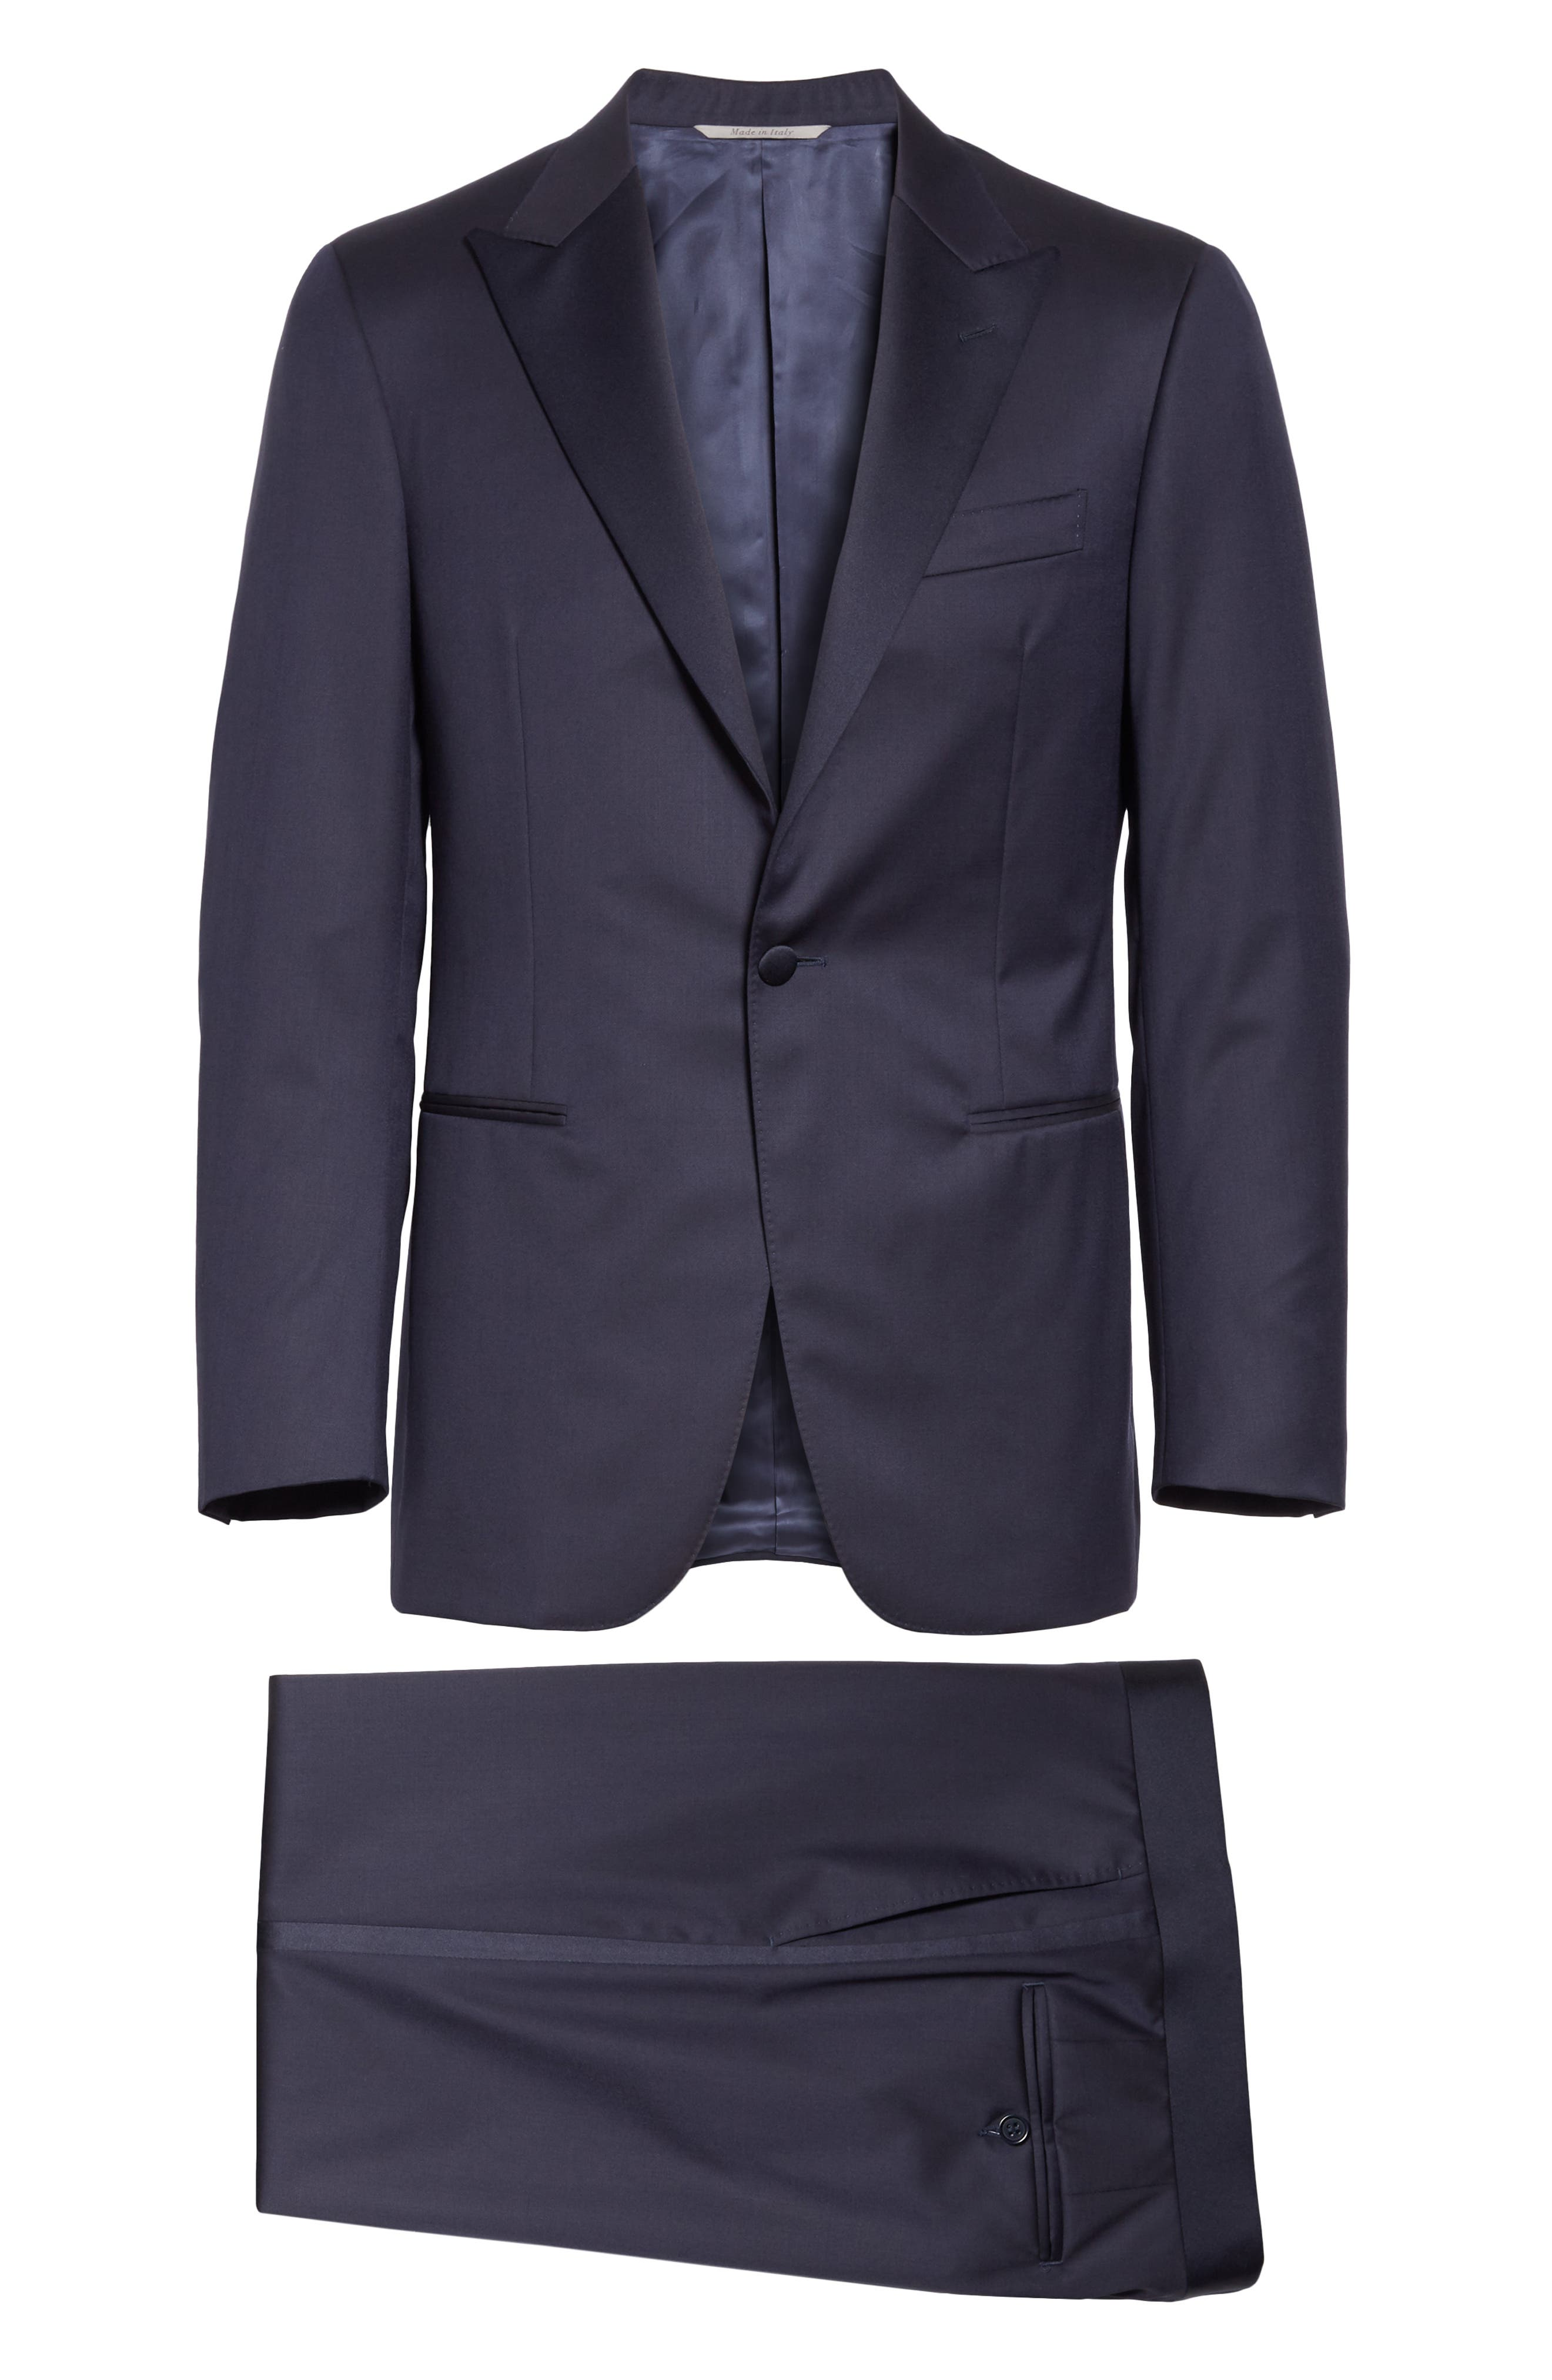 CANALI, Classic Fit Wool Tuxedo, Alternate thumbnail 8, color, NAVY